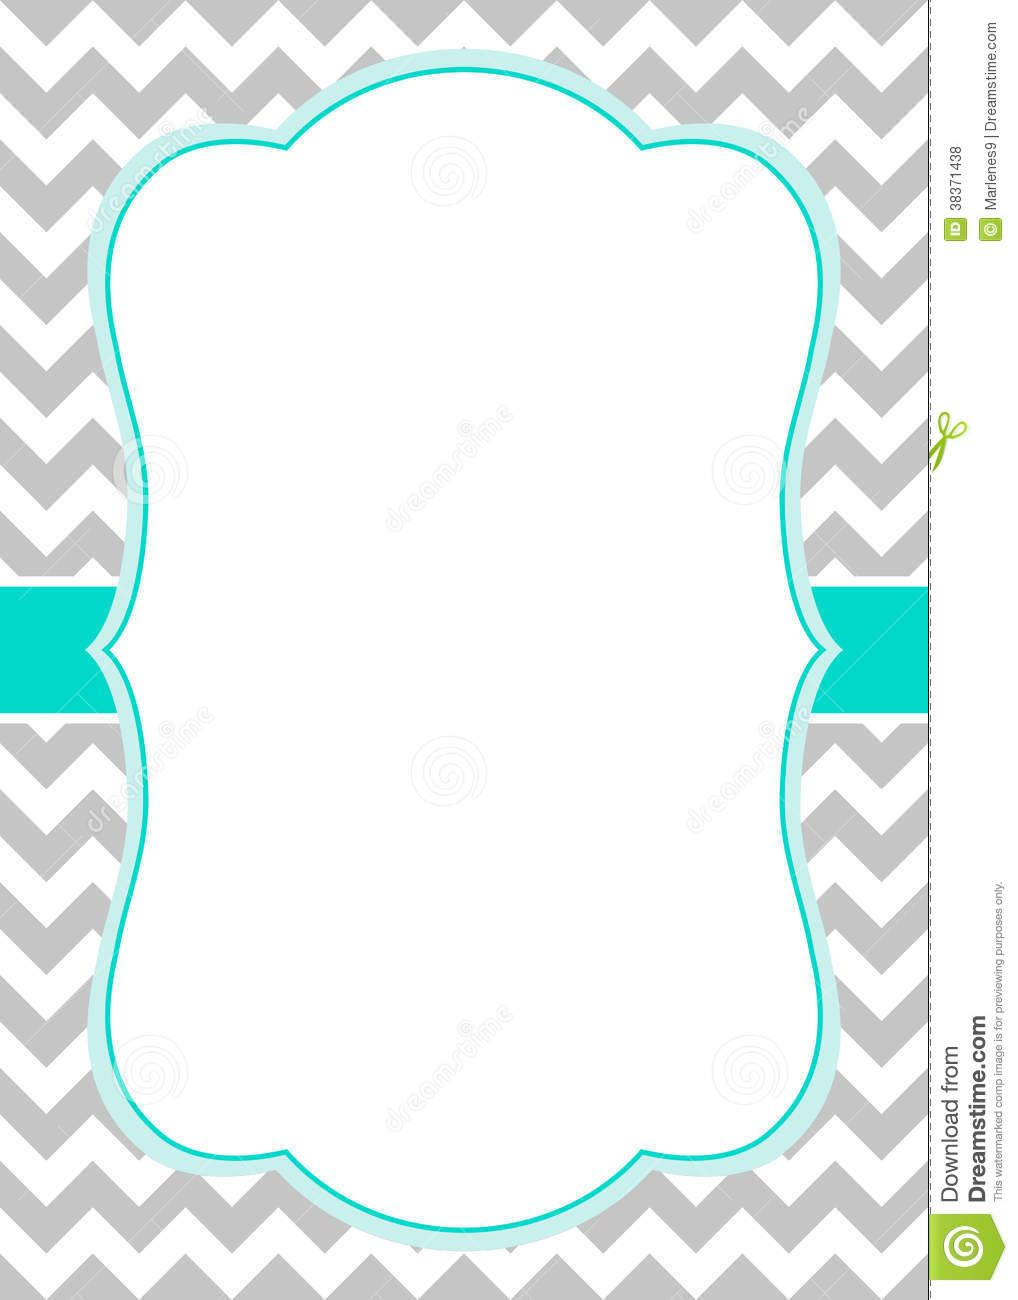 Free Chevron Border Templateadmin Admin Baby Shower Ideas Free